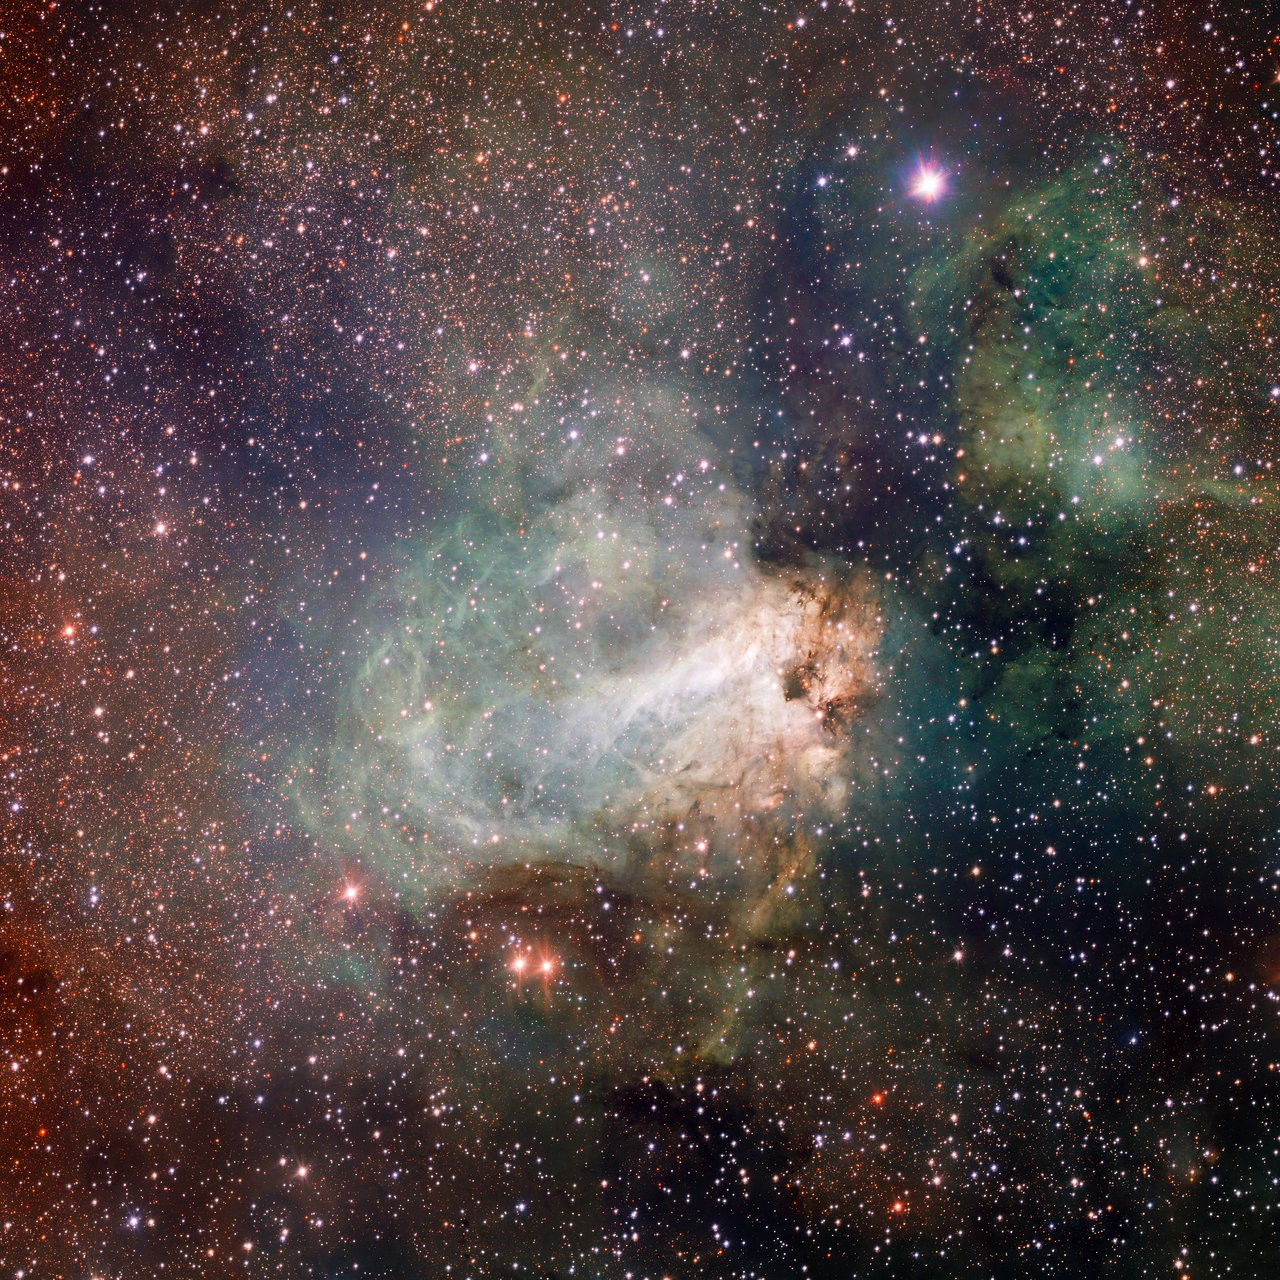 Mounted image 130: VST image of the Omega Nebula